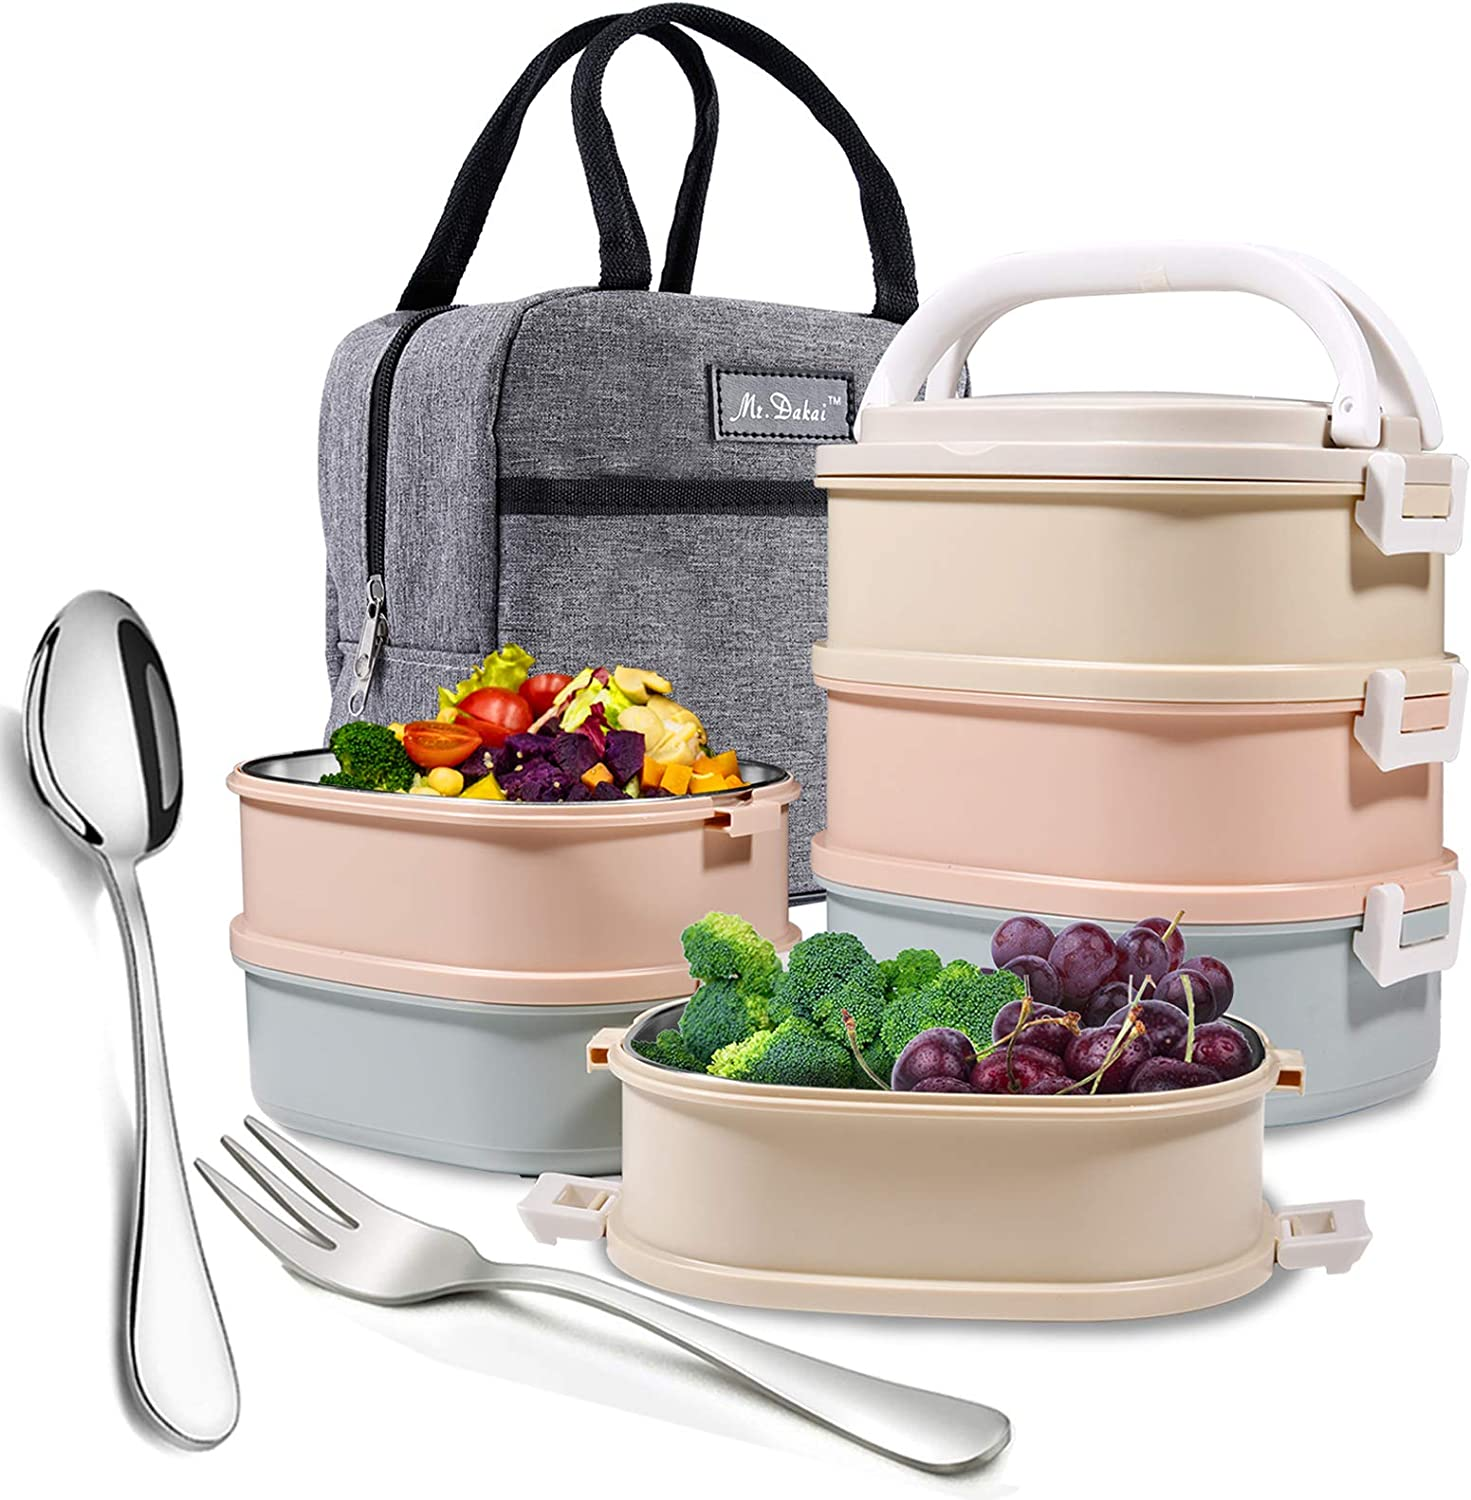 Mr.Dakai Stackable Bento Lunch Box, 3-Tier Compartment Thermal Stainless Steel Insulated Lunch Container with Lunch Bag & Fork Spoon, Leakproof Container for Office, Adults, Men Women - Square